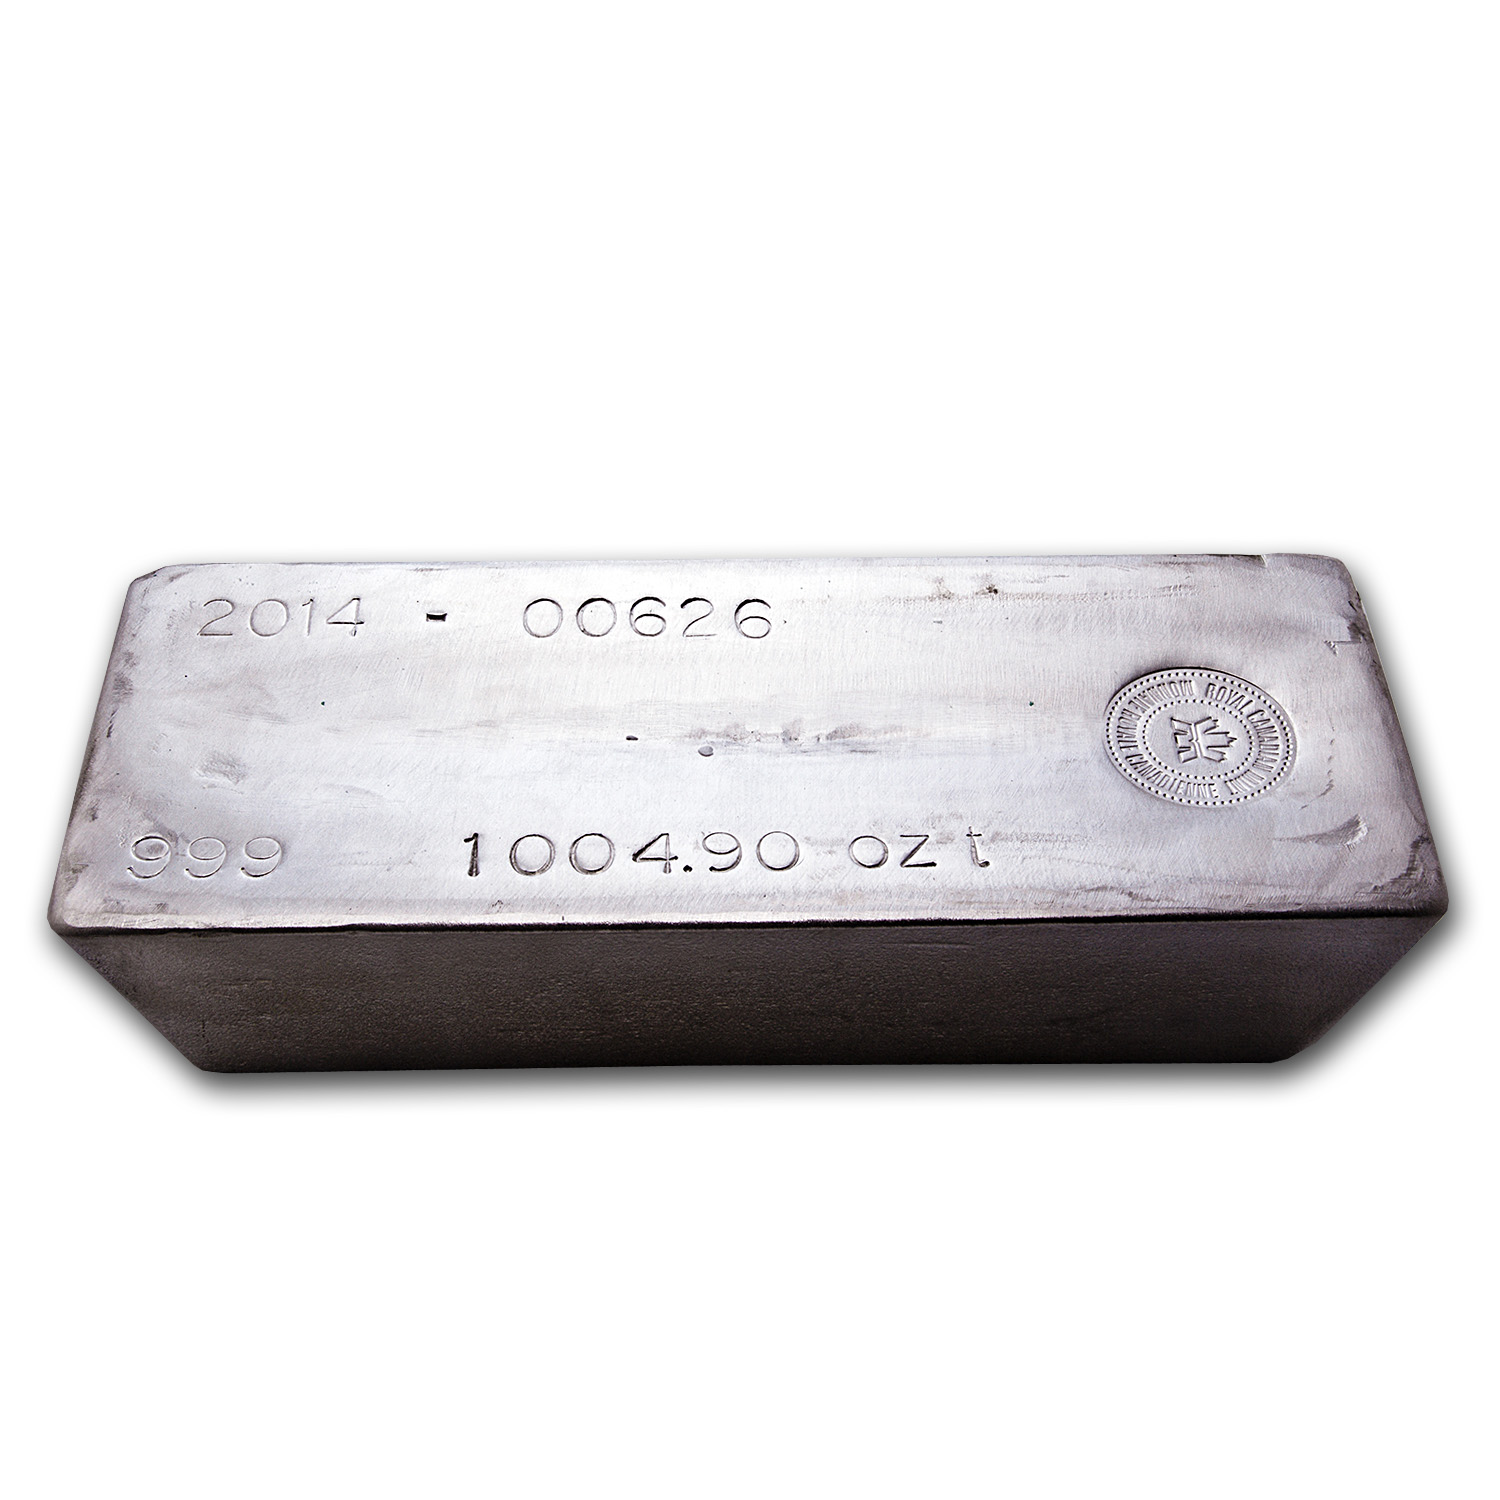 996.70 oz Silver Bar - Royal Canadian Mint (COMEX Deliverable)